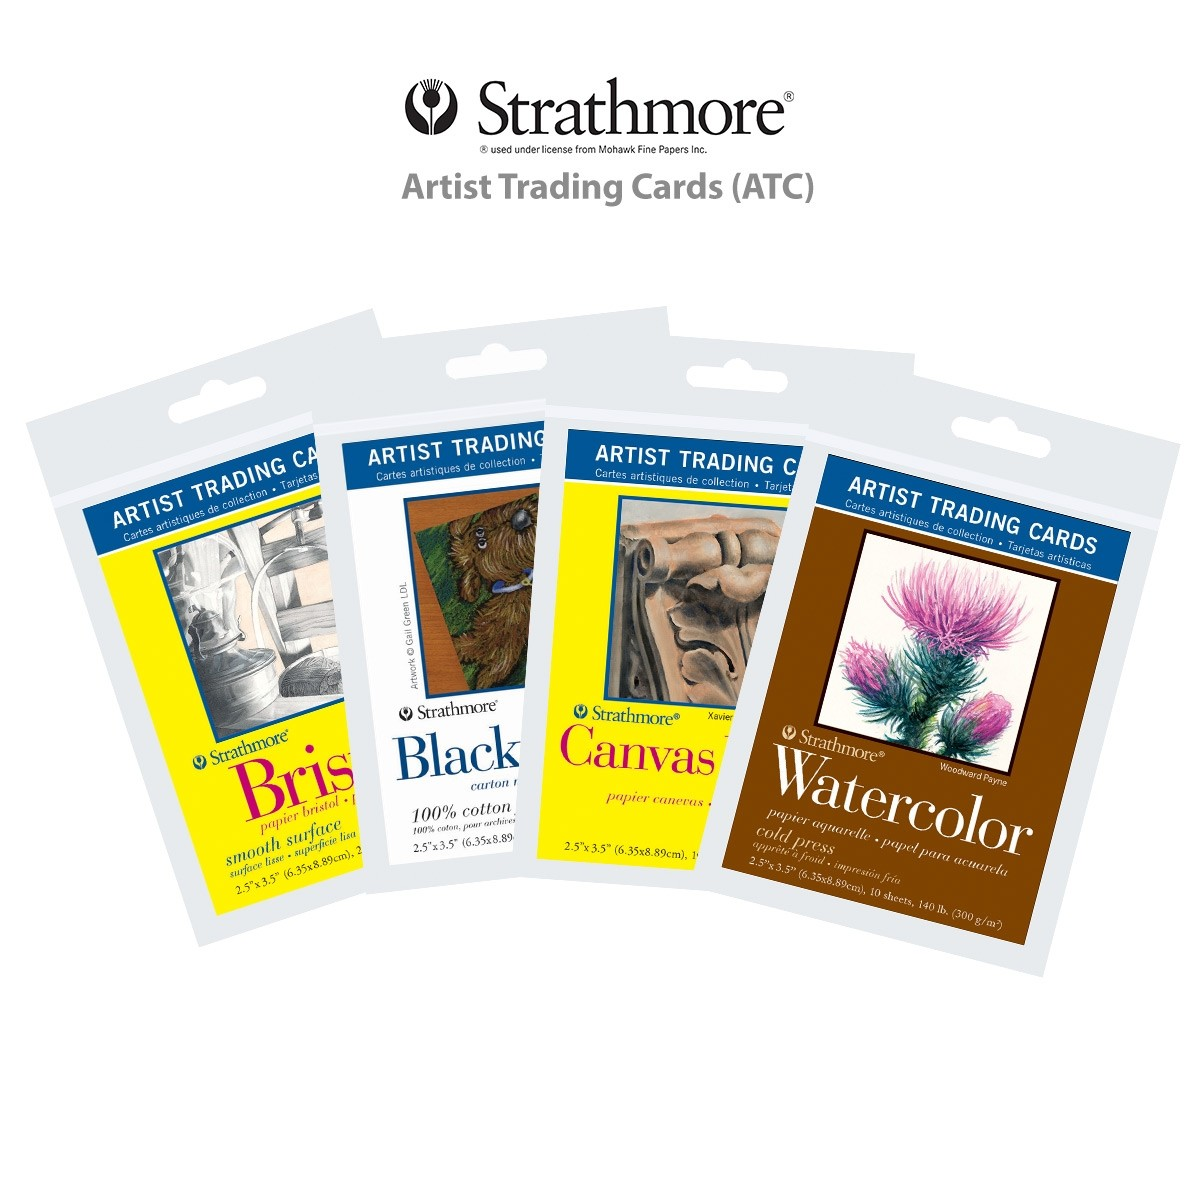 Strathmore Artist Trading Cards (ATC)